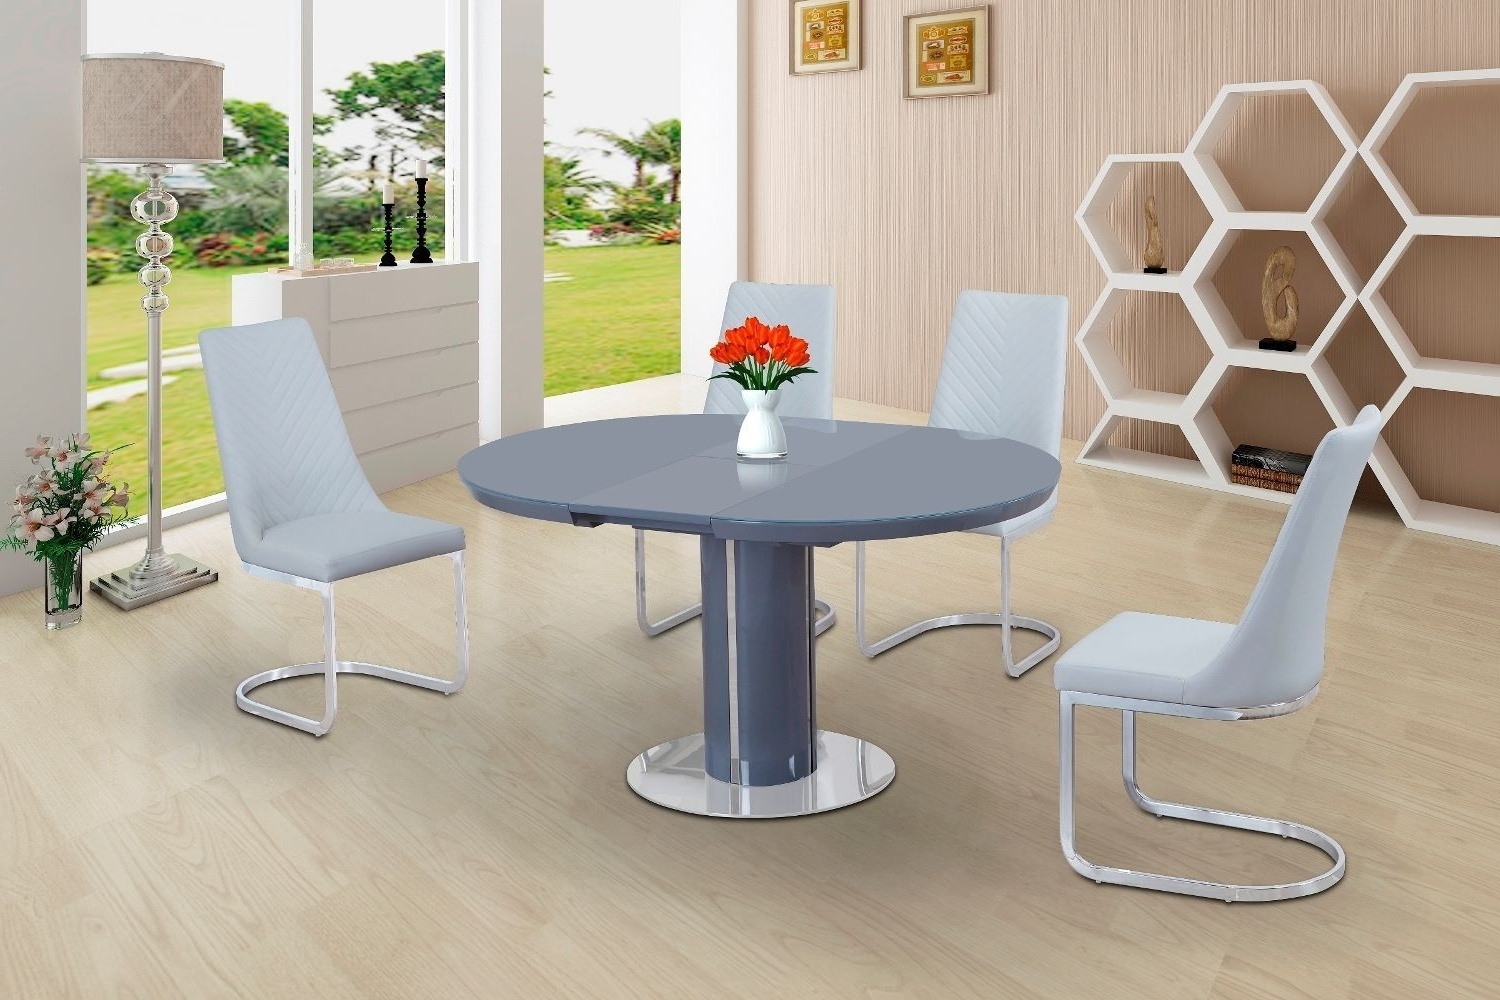 Eclipse Round Oval Gloss & Glass Extending 110 To 145 Cm Dining throughout Well-liked White High Gloss Oval Dining Tables